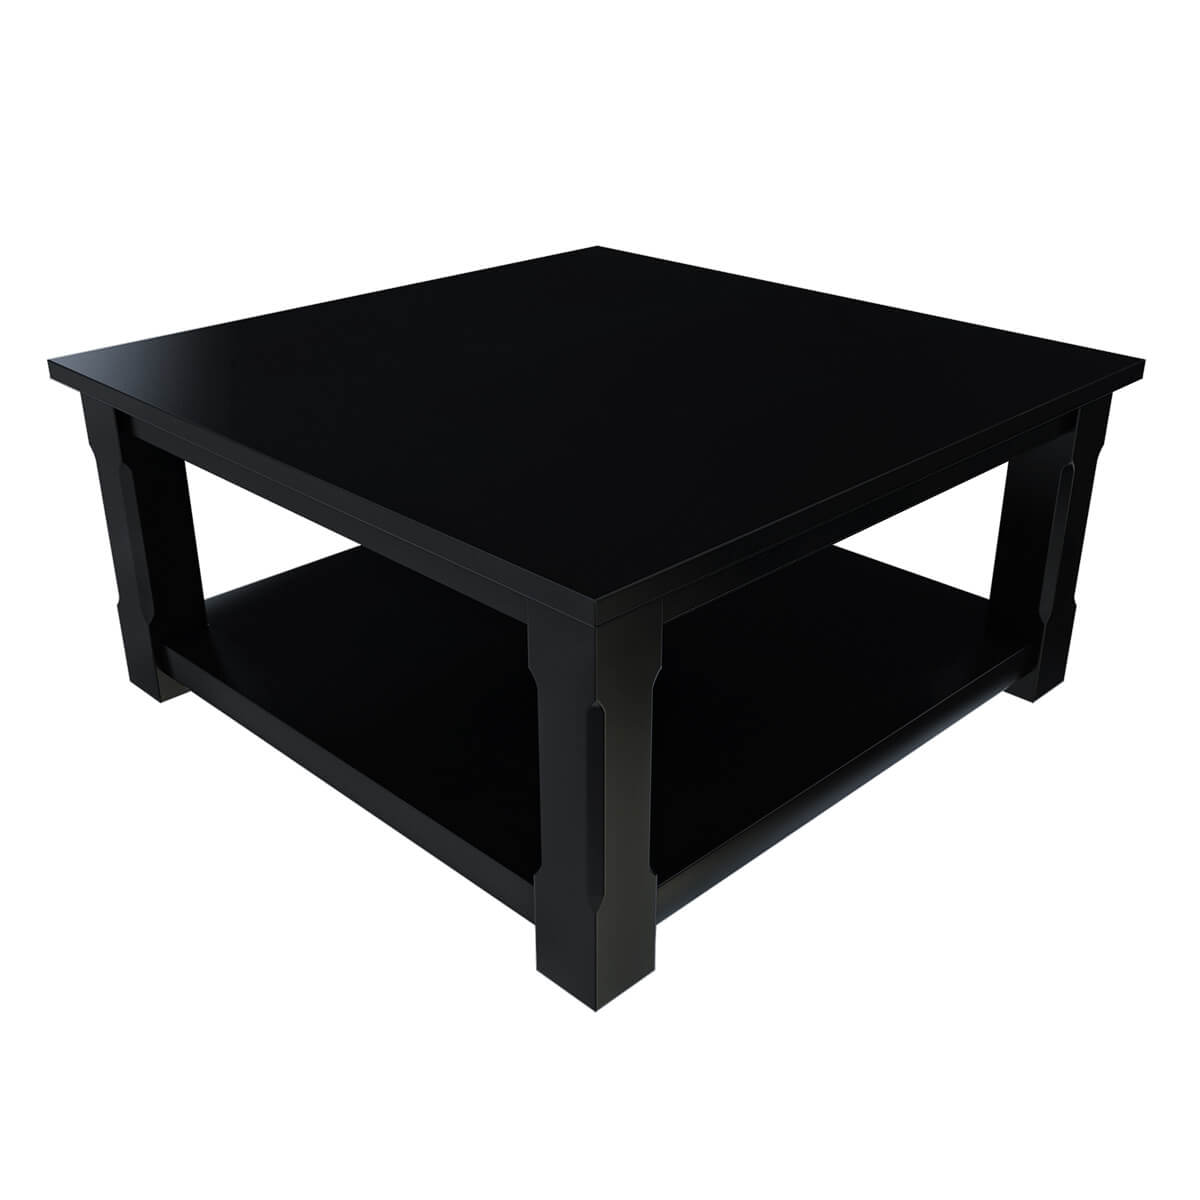 Rustic Solid Wood Black 2 Tier Square Shaker Coffee Table